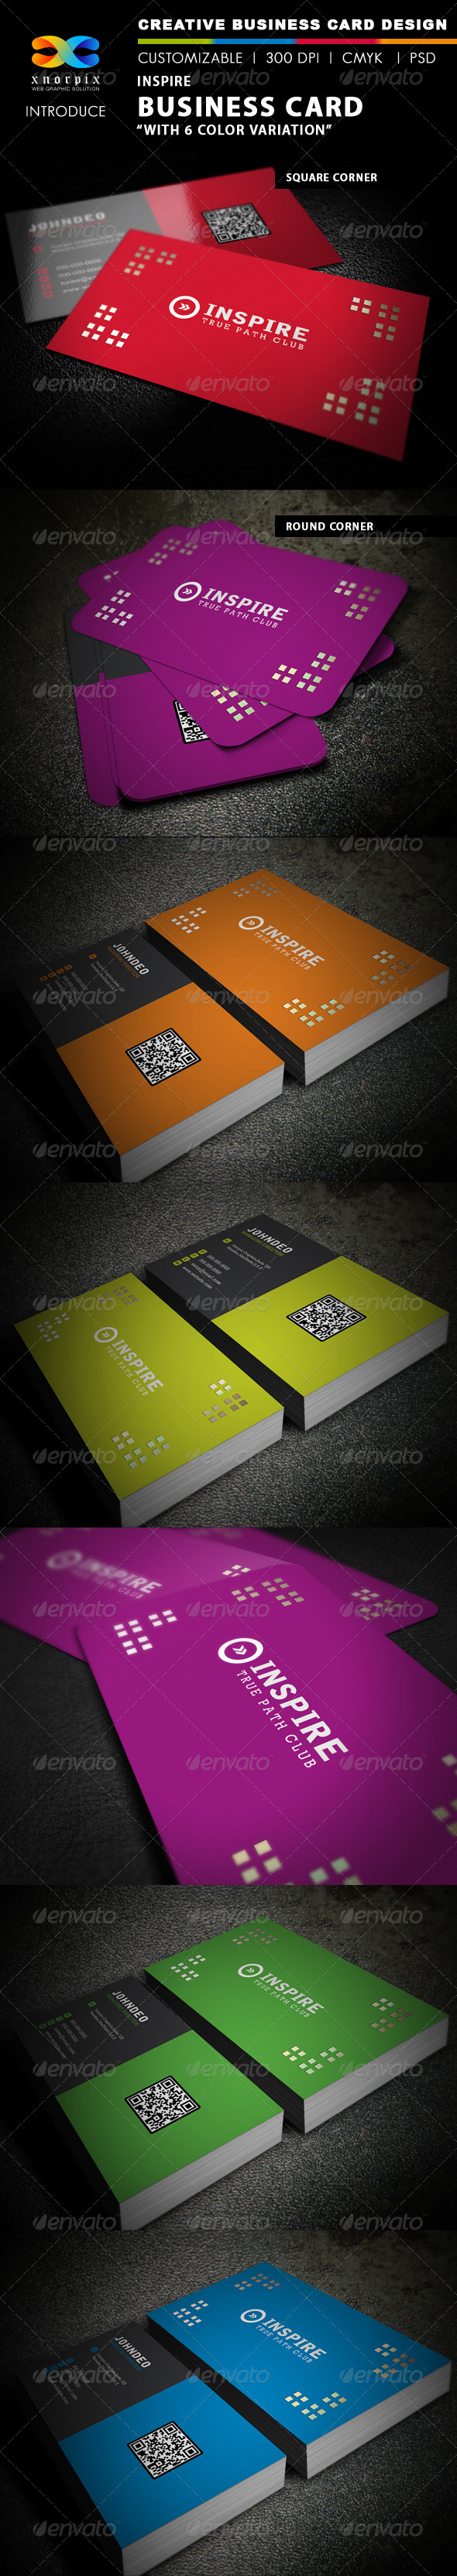 Inspire Business Card - Creative Business Cards